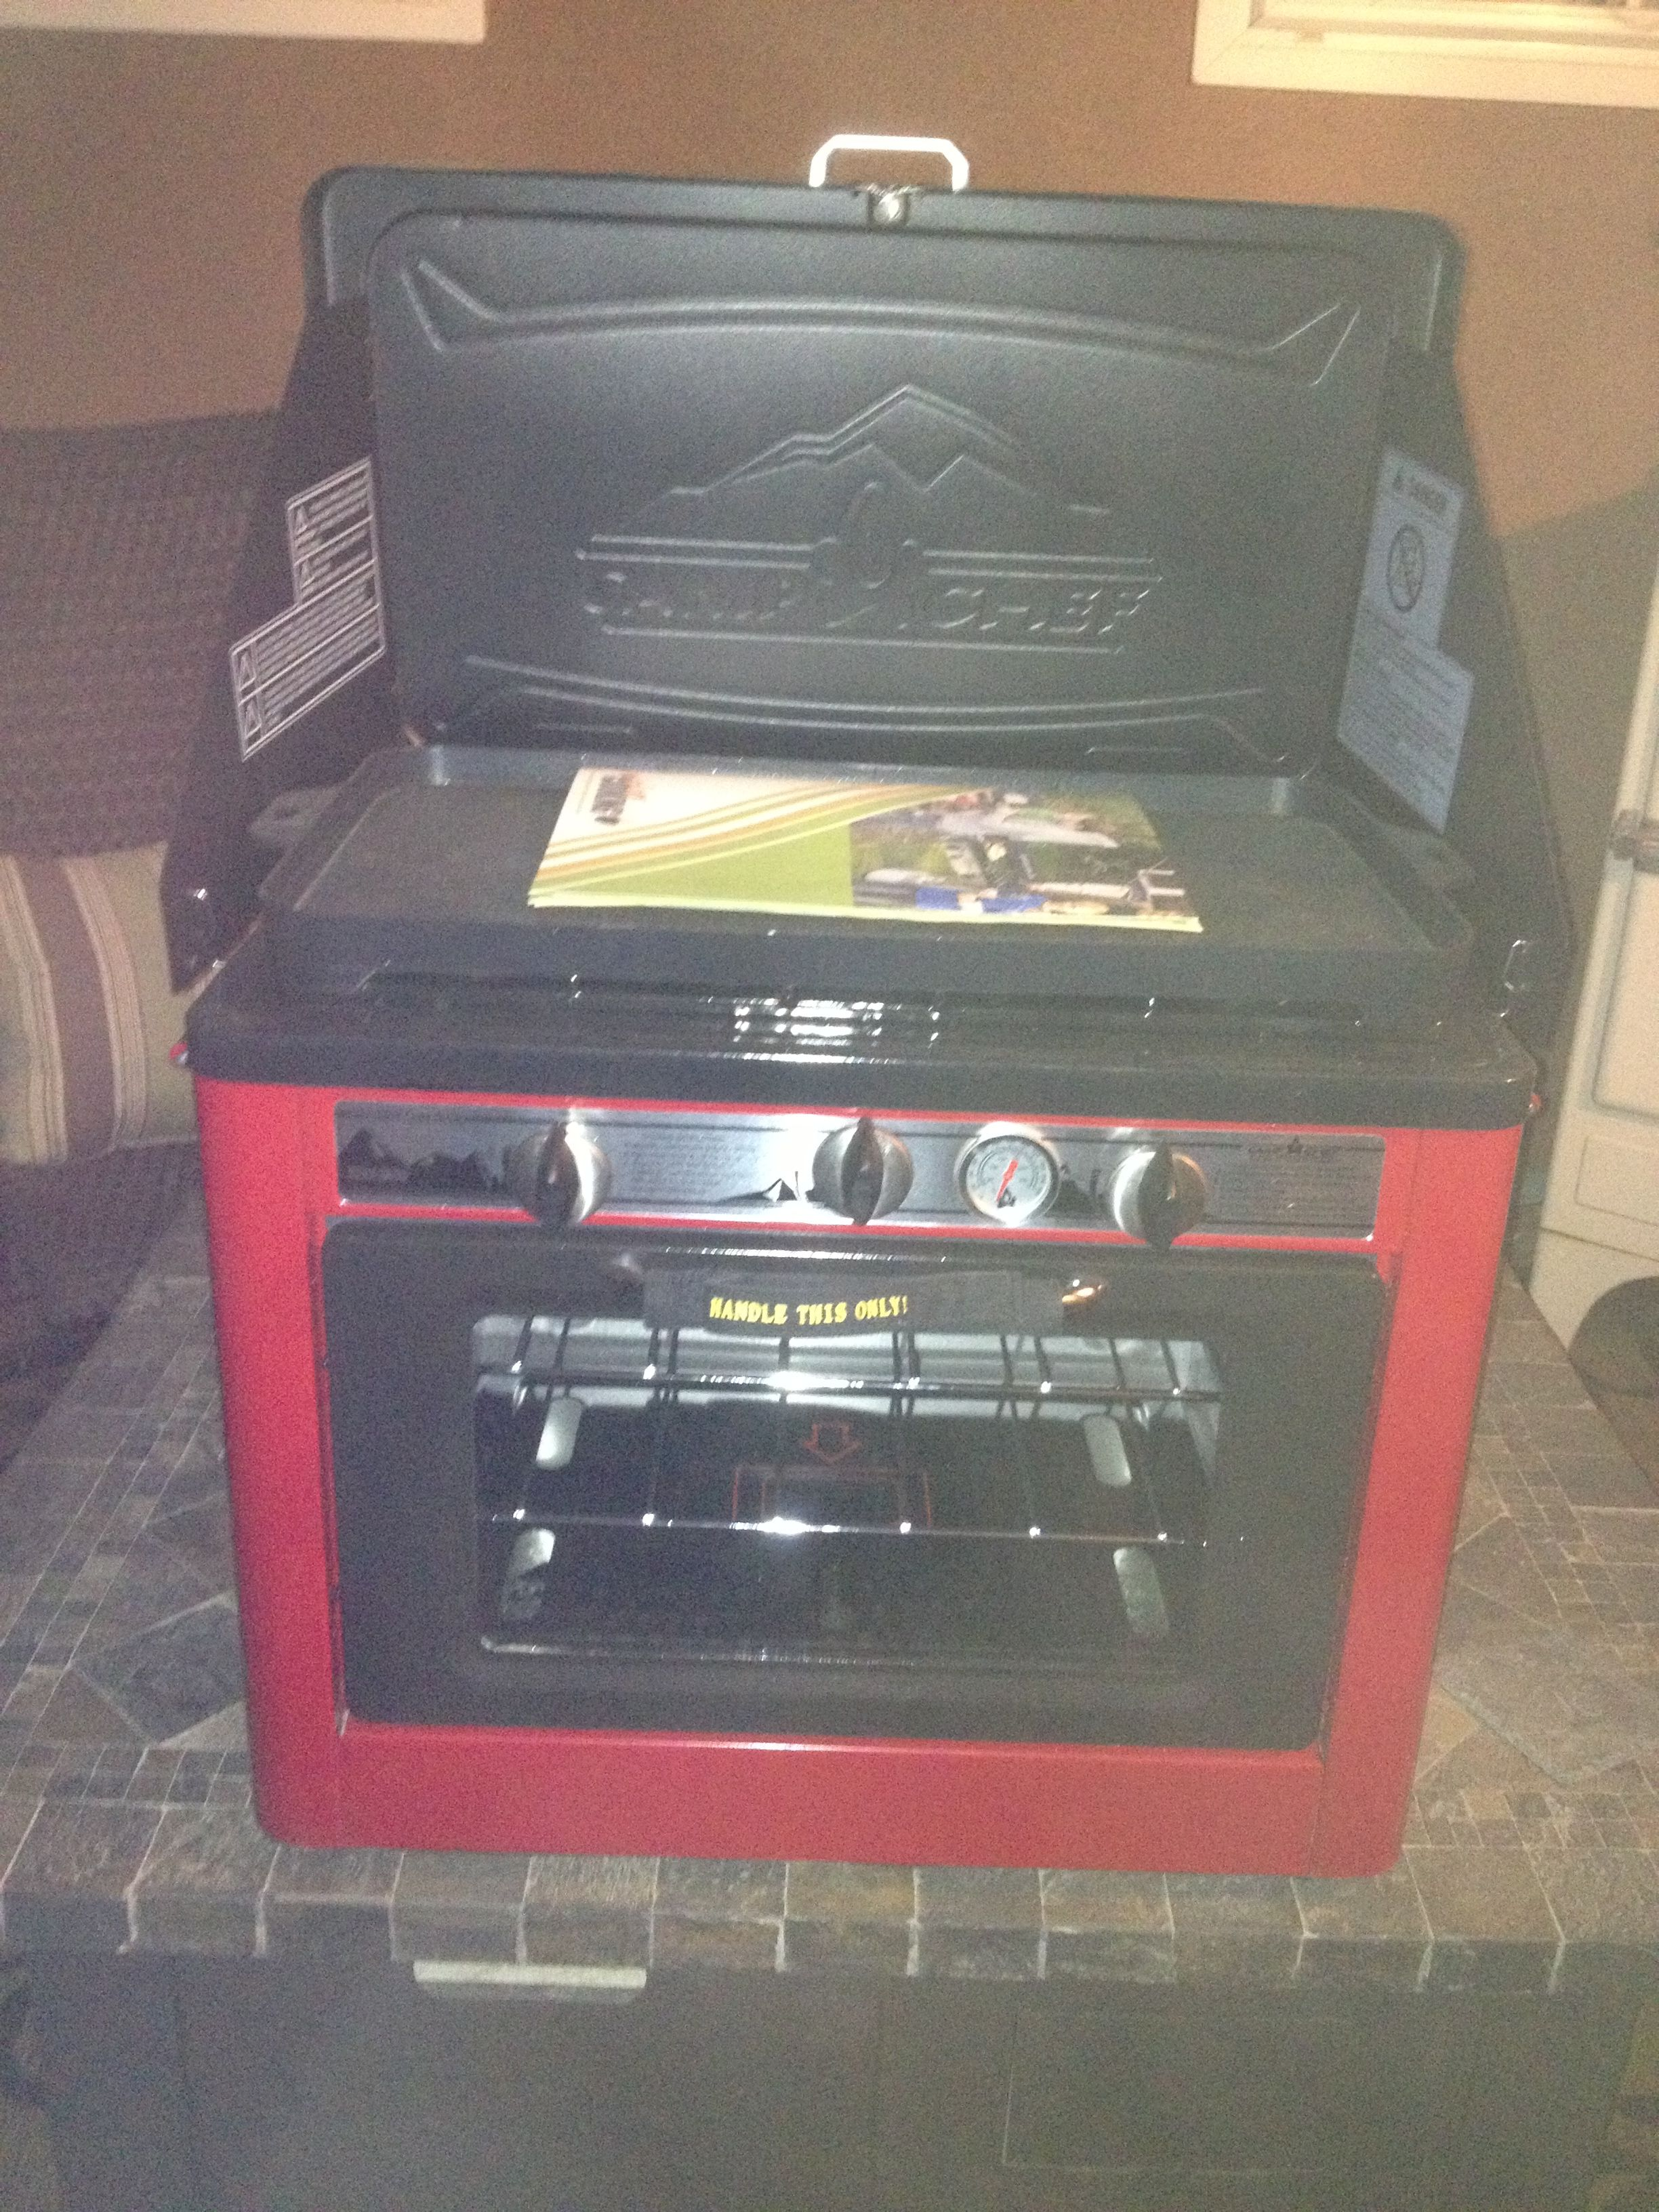 My new camping toy now I can bake cookies in my oven while I am camping all is good